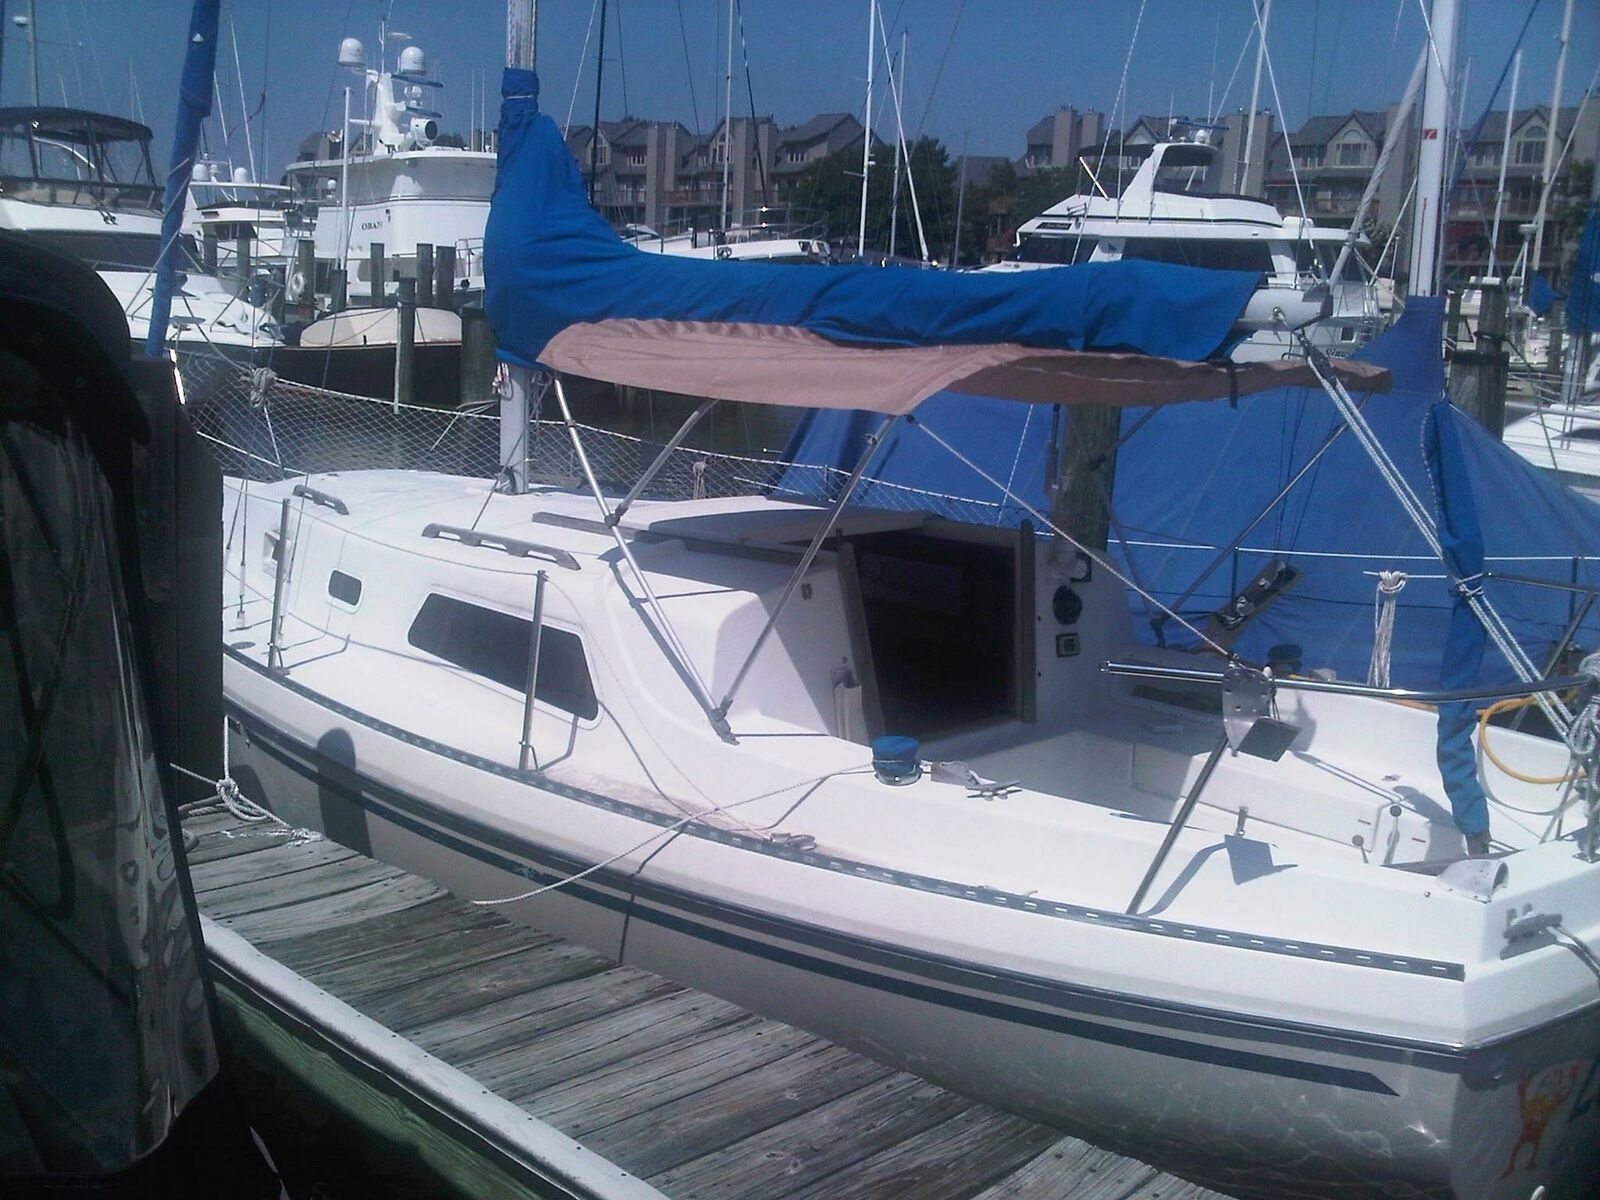 1979 WATKINS 27 SAILBOAT Located in ANNAPOLIS, MARYLAND - NO TRAILER